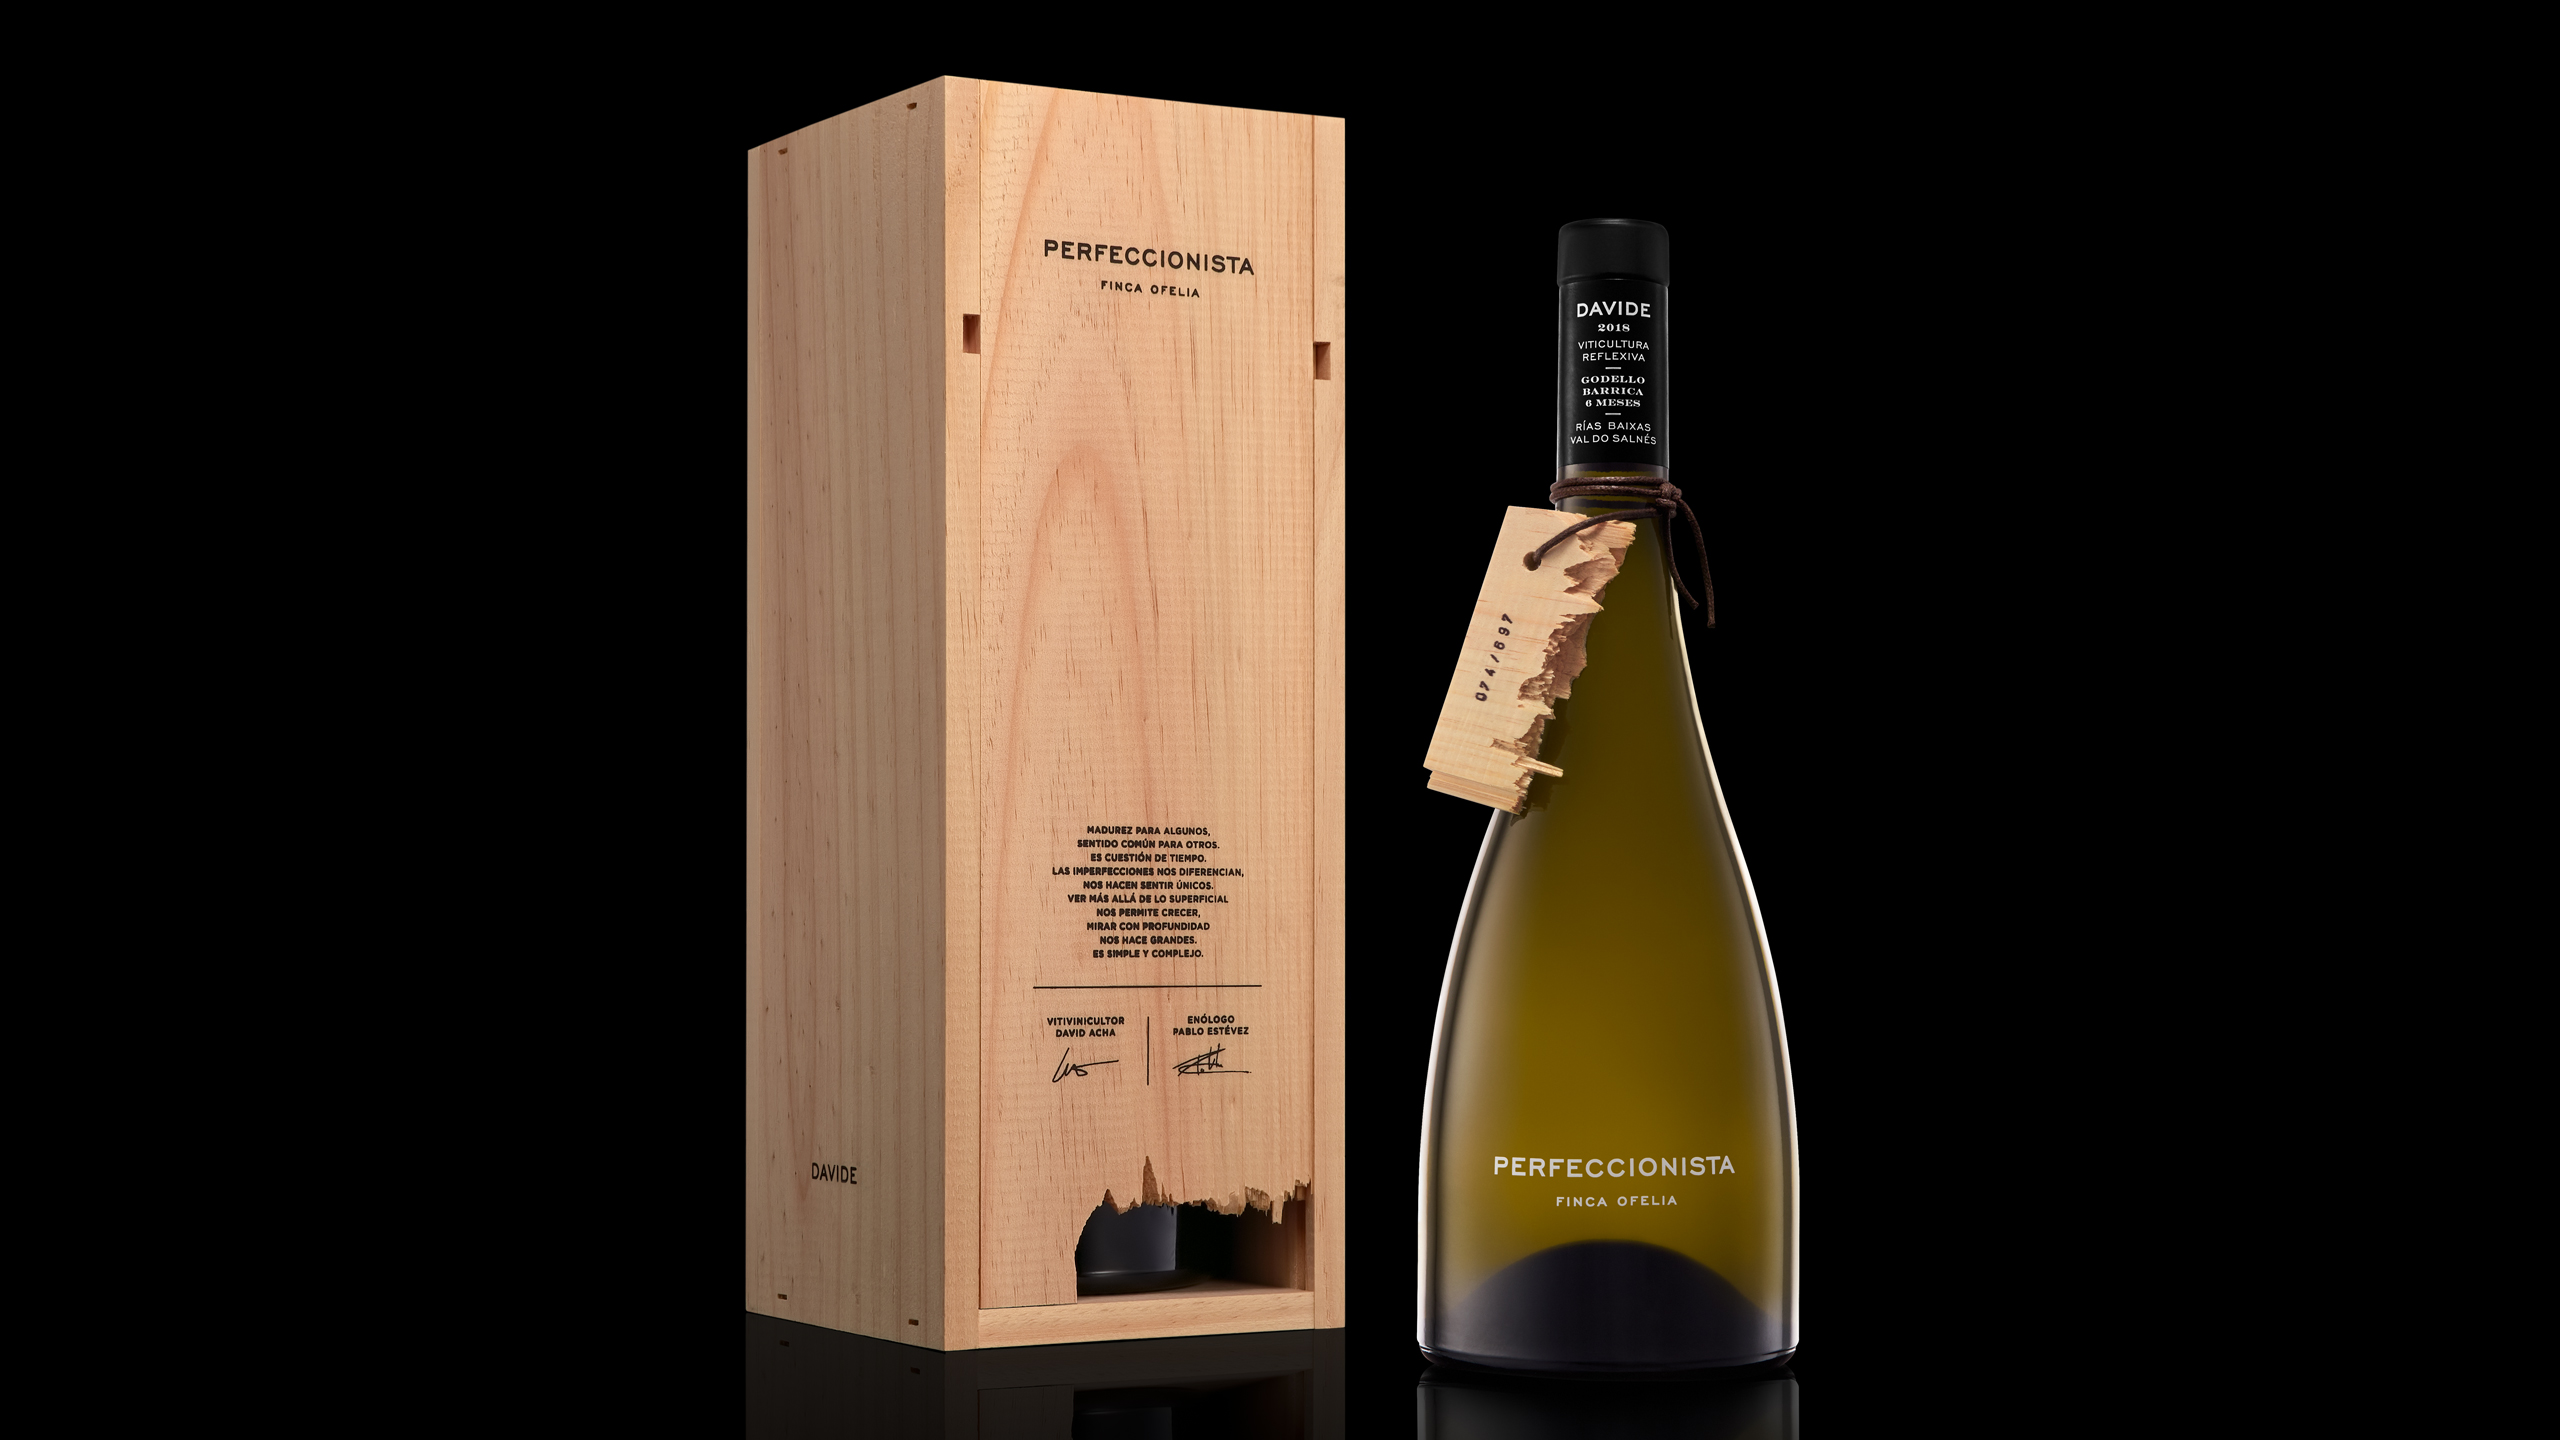 Packaging del vino Perfeccionista, de Bodegas Davide. Galicia.